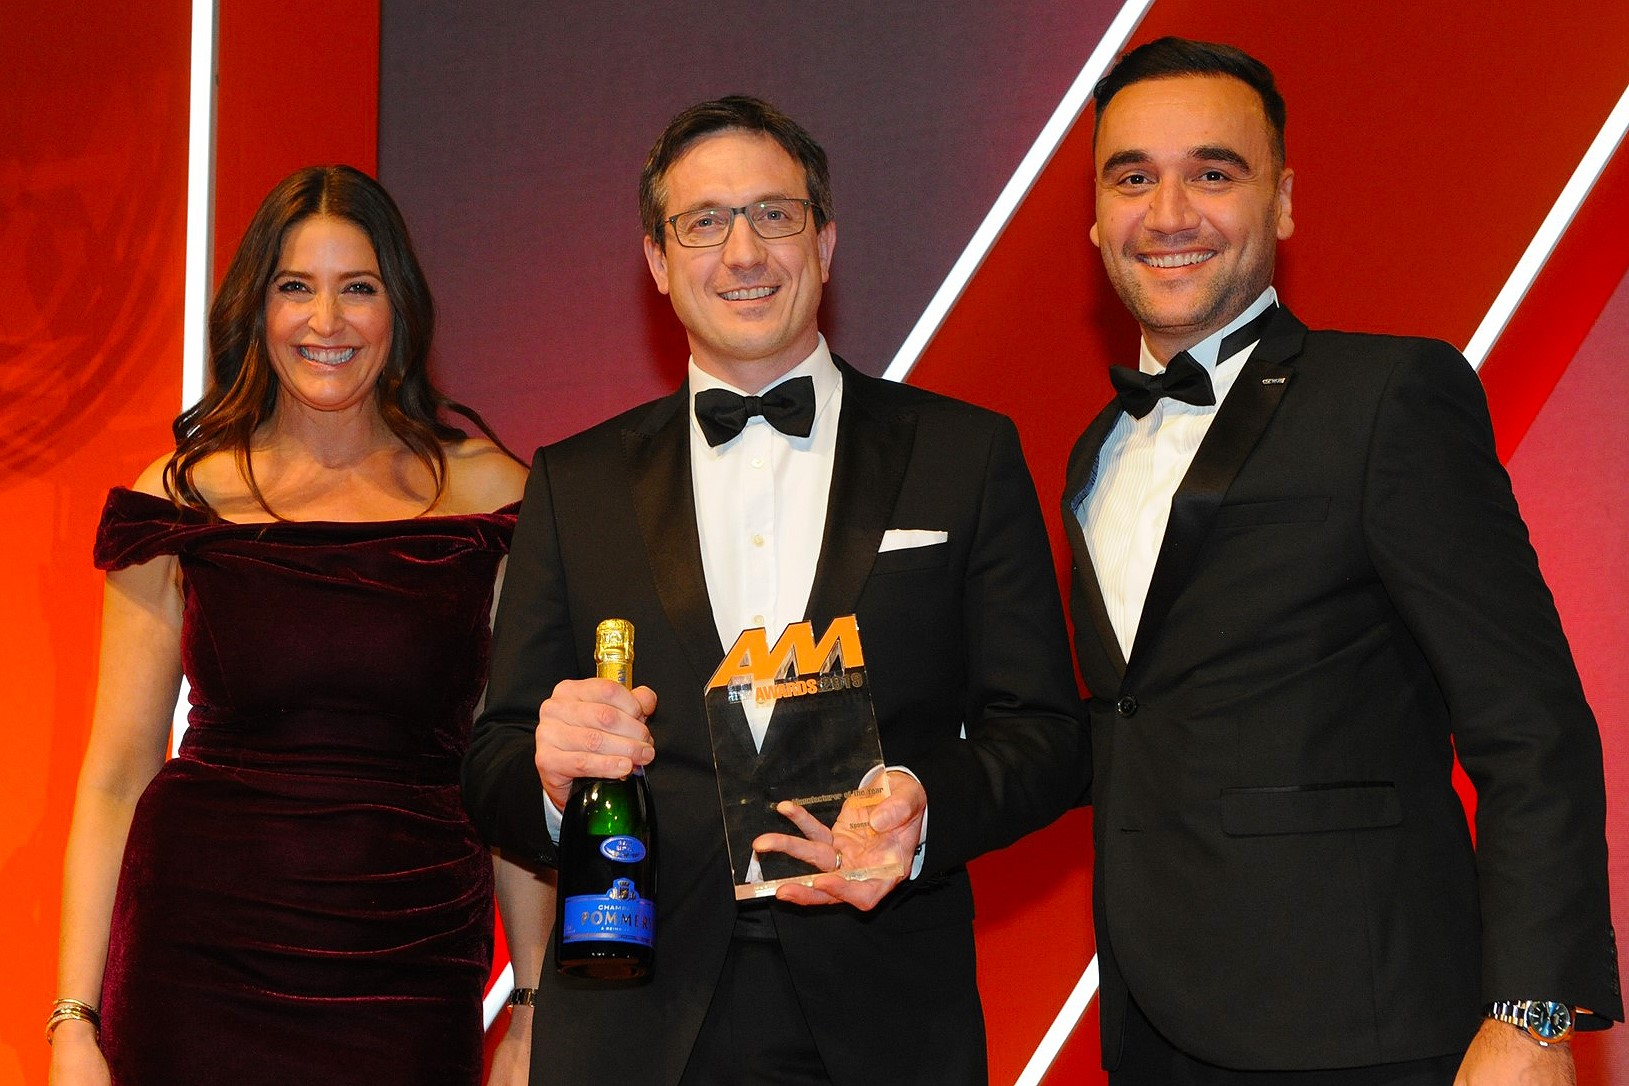 Ashley Andrew, managing director, Hyundai Motor  UK, accepts the award from Hasan Nergiz, head  of OEM and agency strategy, Carwow, right, and host Lisa Snowdon